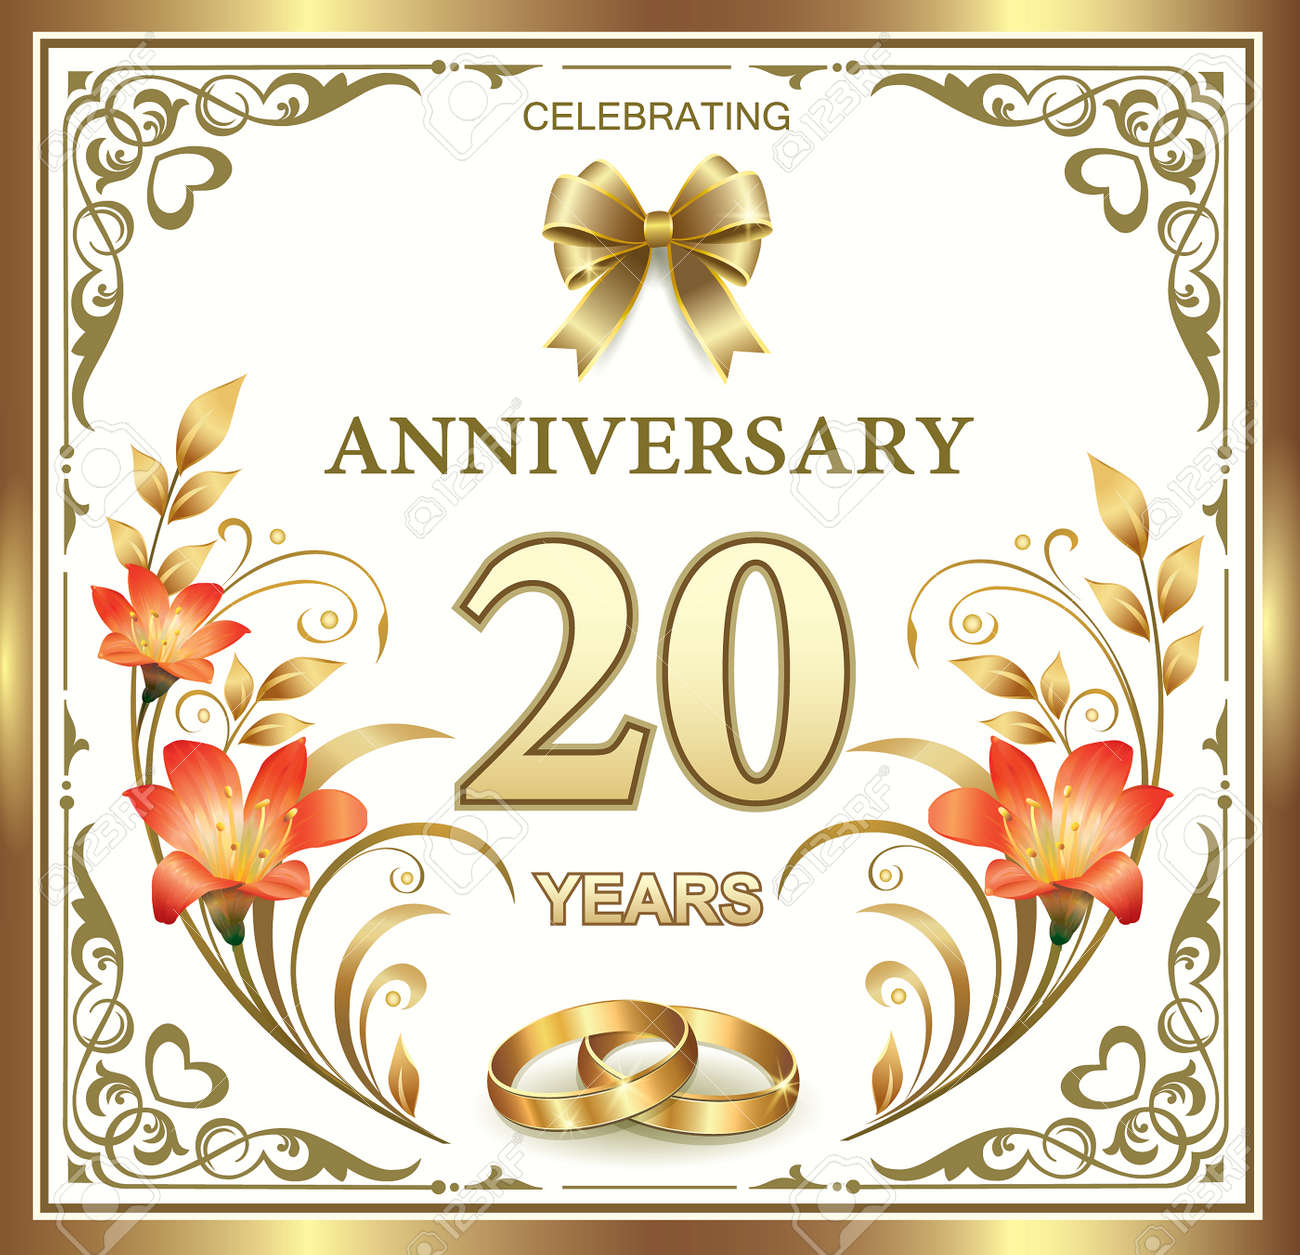 Beautiful Card With 20 Wedding Anniversary With Lilies Royalty Free Cliparts Vectors And Stock Illustration Image 44651631